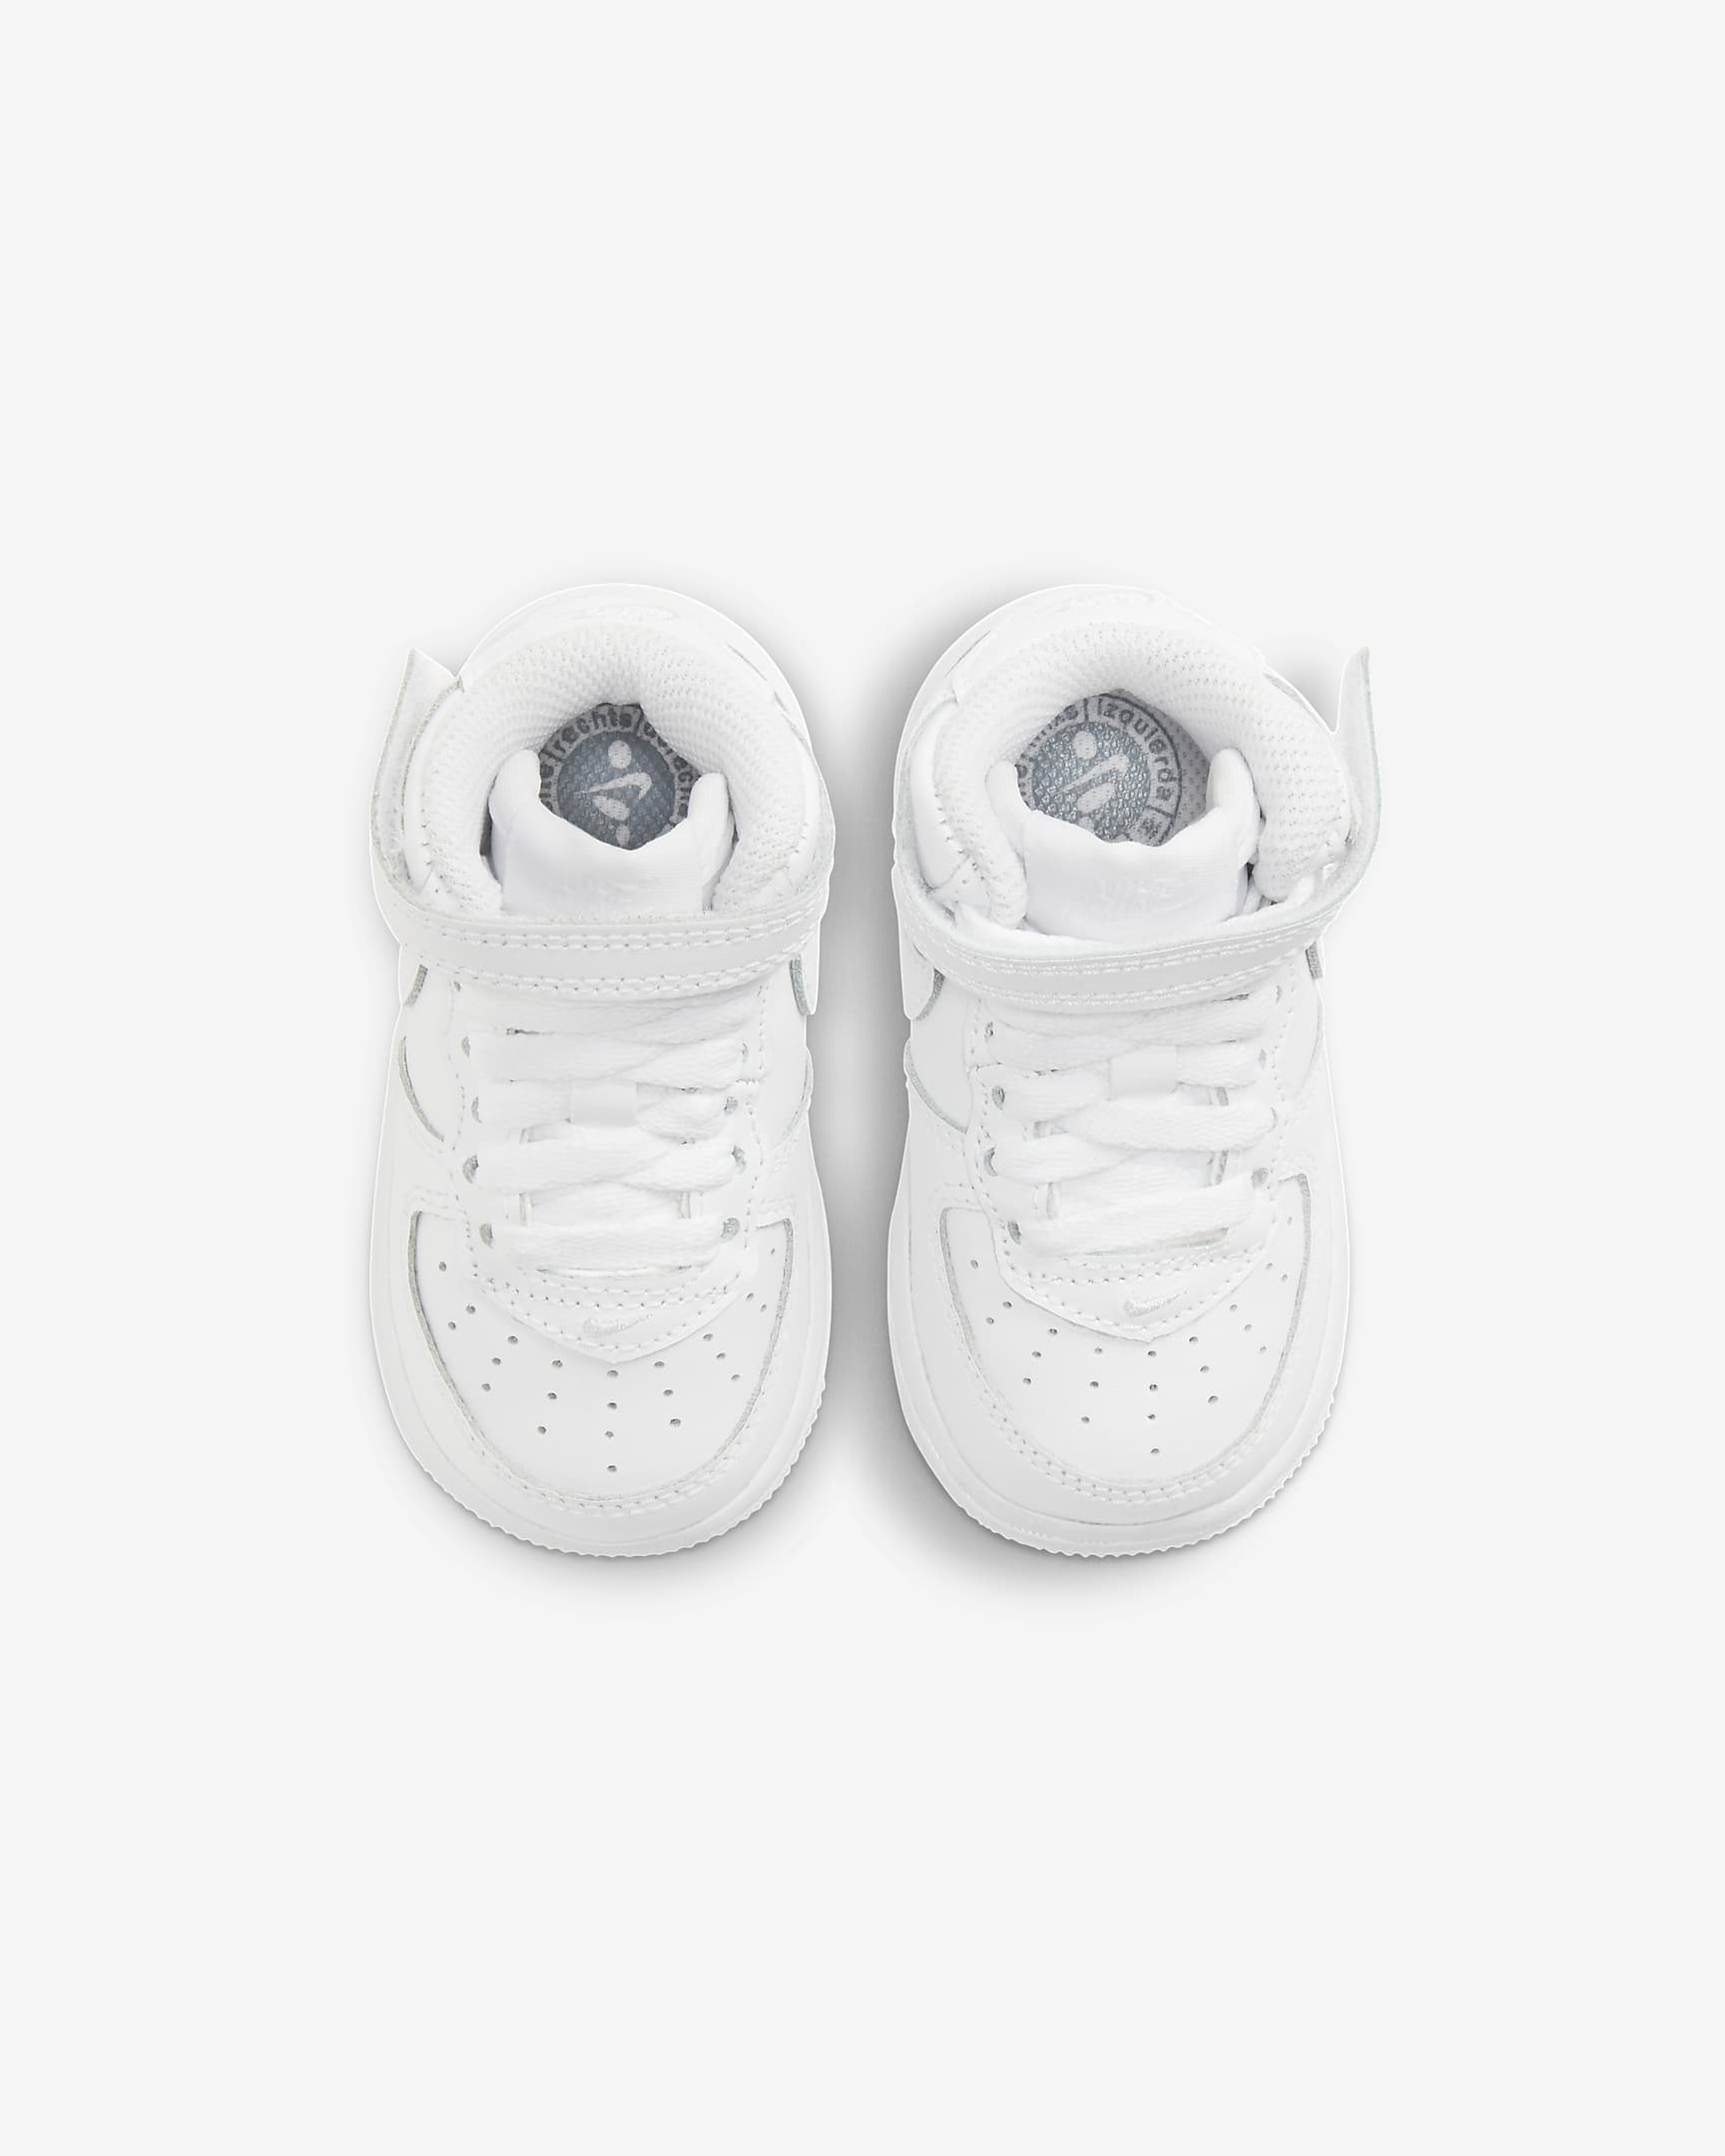 Nike Force 1 Mid Baby Shoe, best baby Christmas gifts